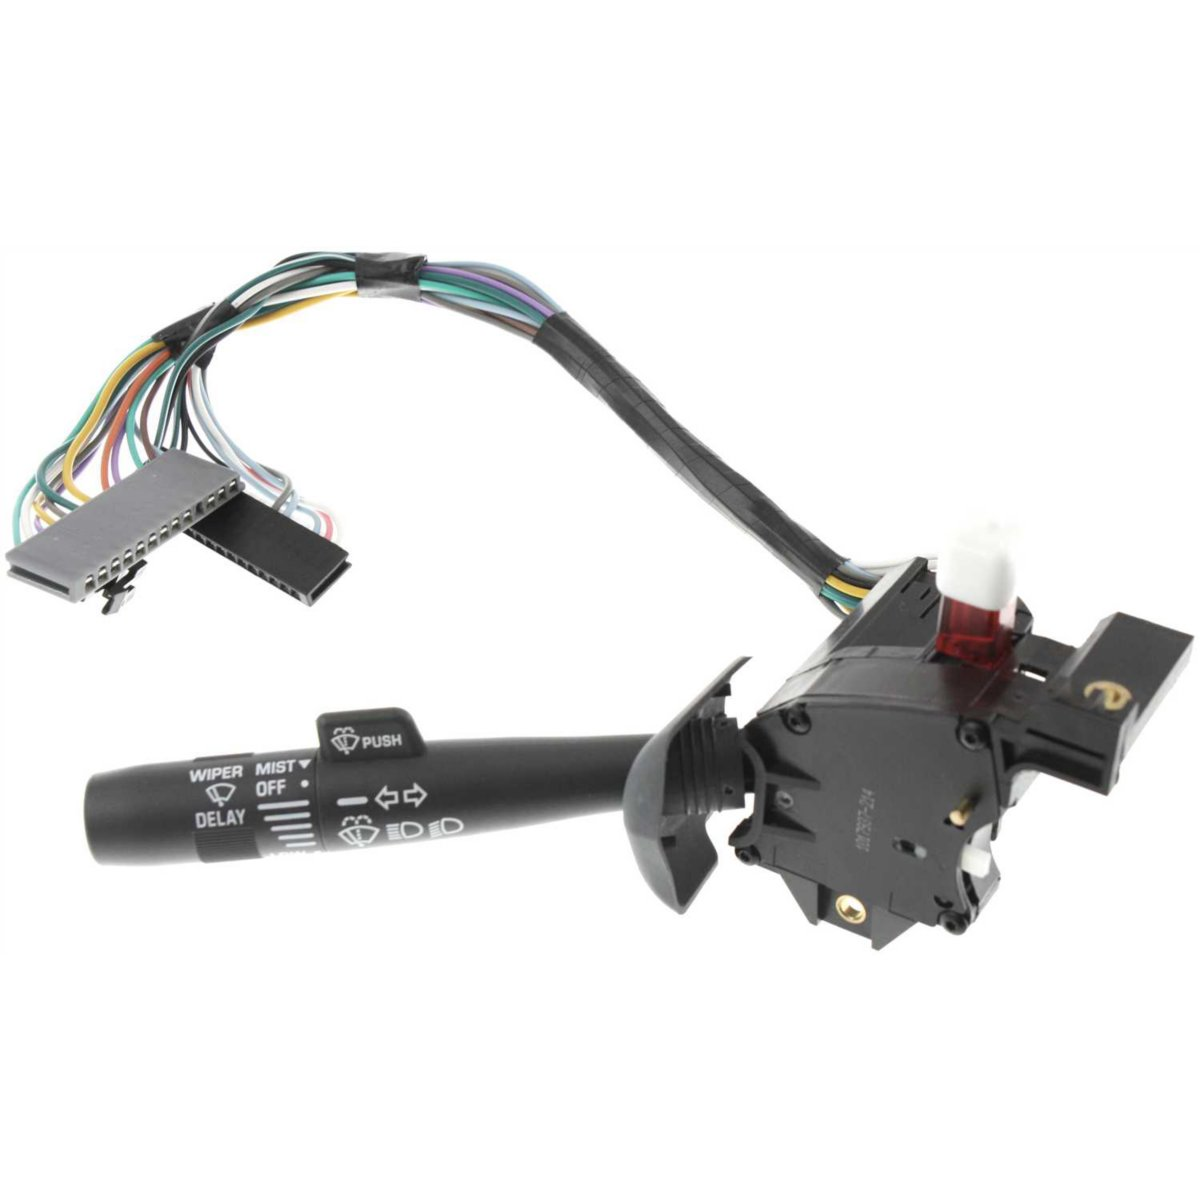 89 Chevy Truck Turn Signal Switch Diagram Free Image About Wiring